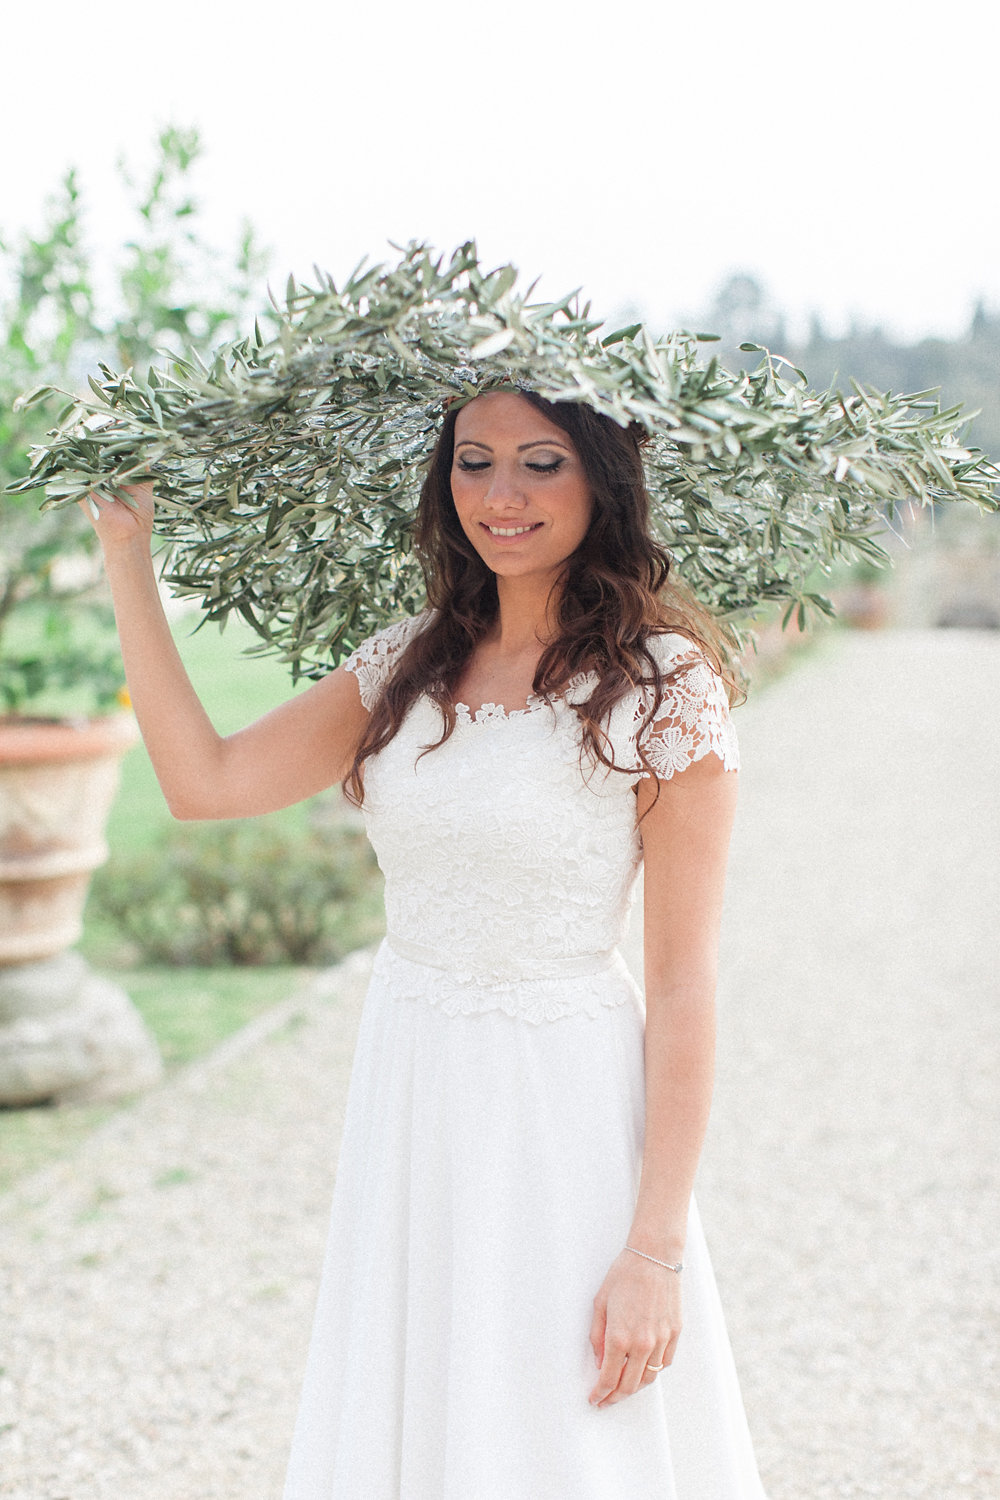 Tuscany Wedding Photographer Roberta Facchini 302